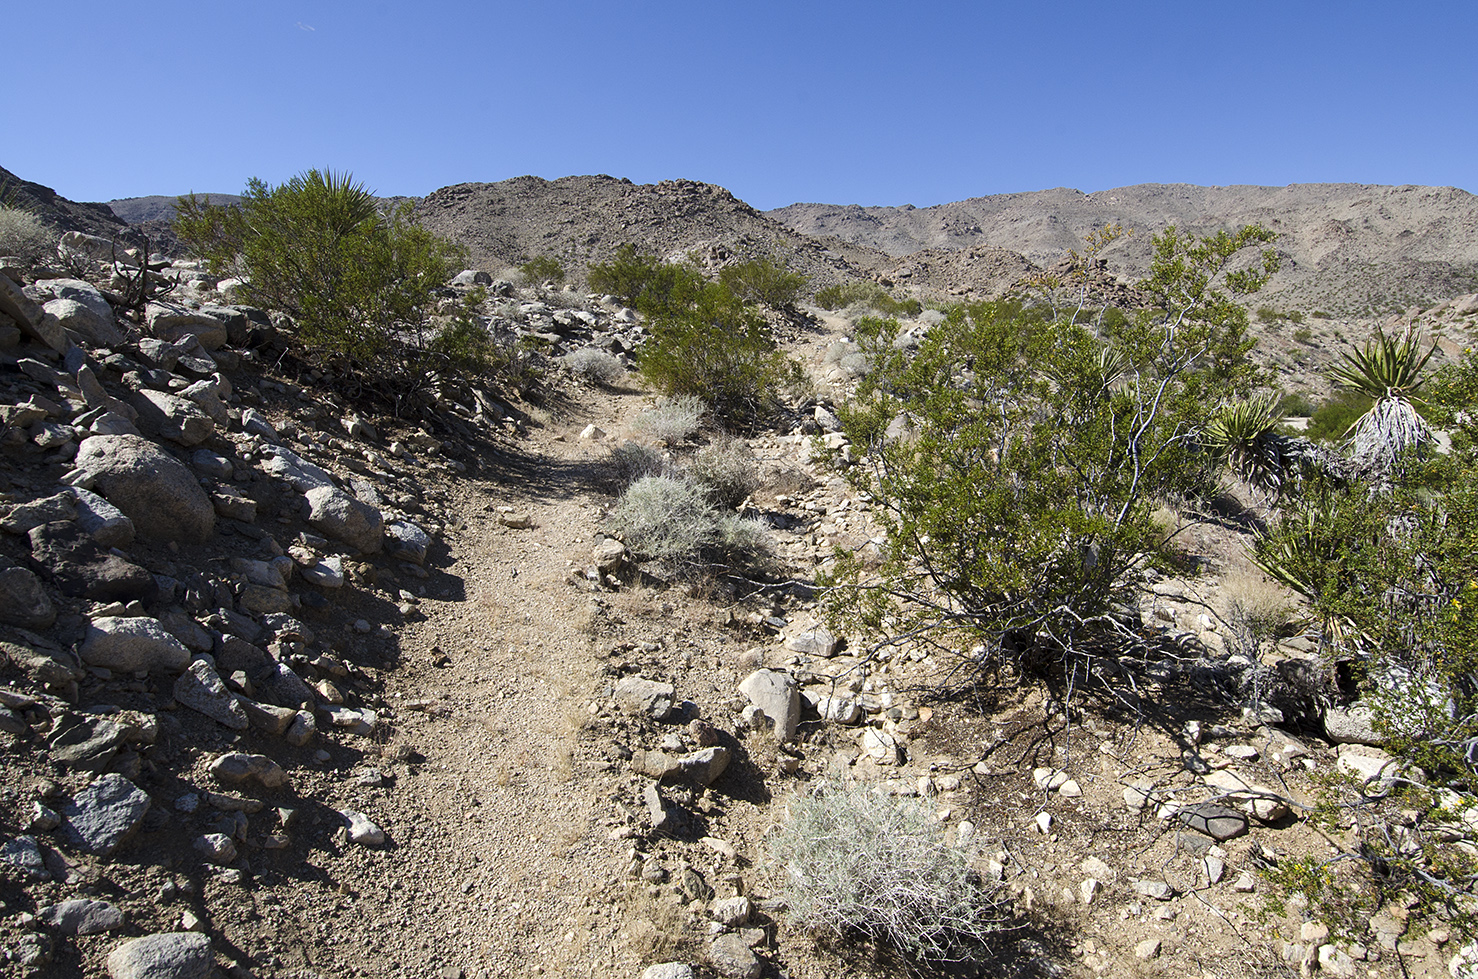 A good view of what alot of the trail will look like from here on out.